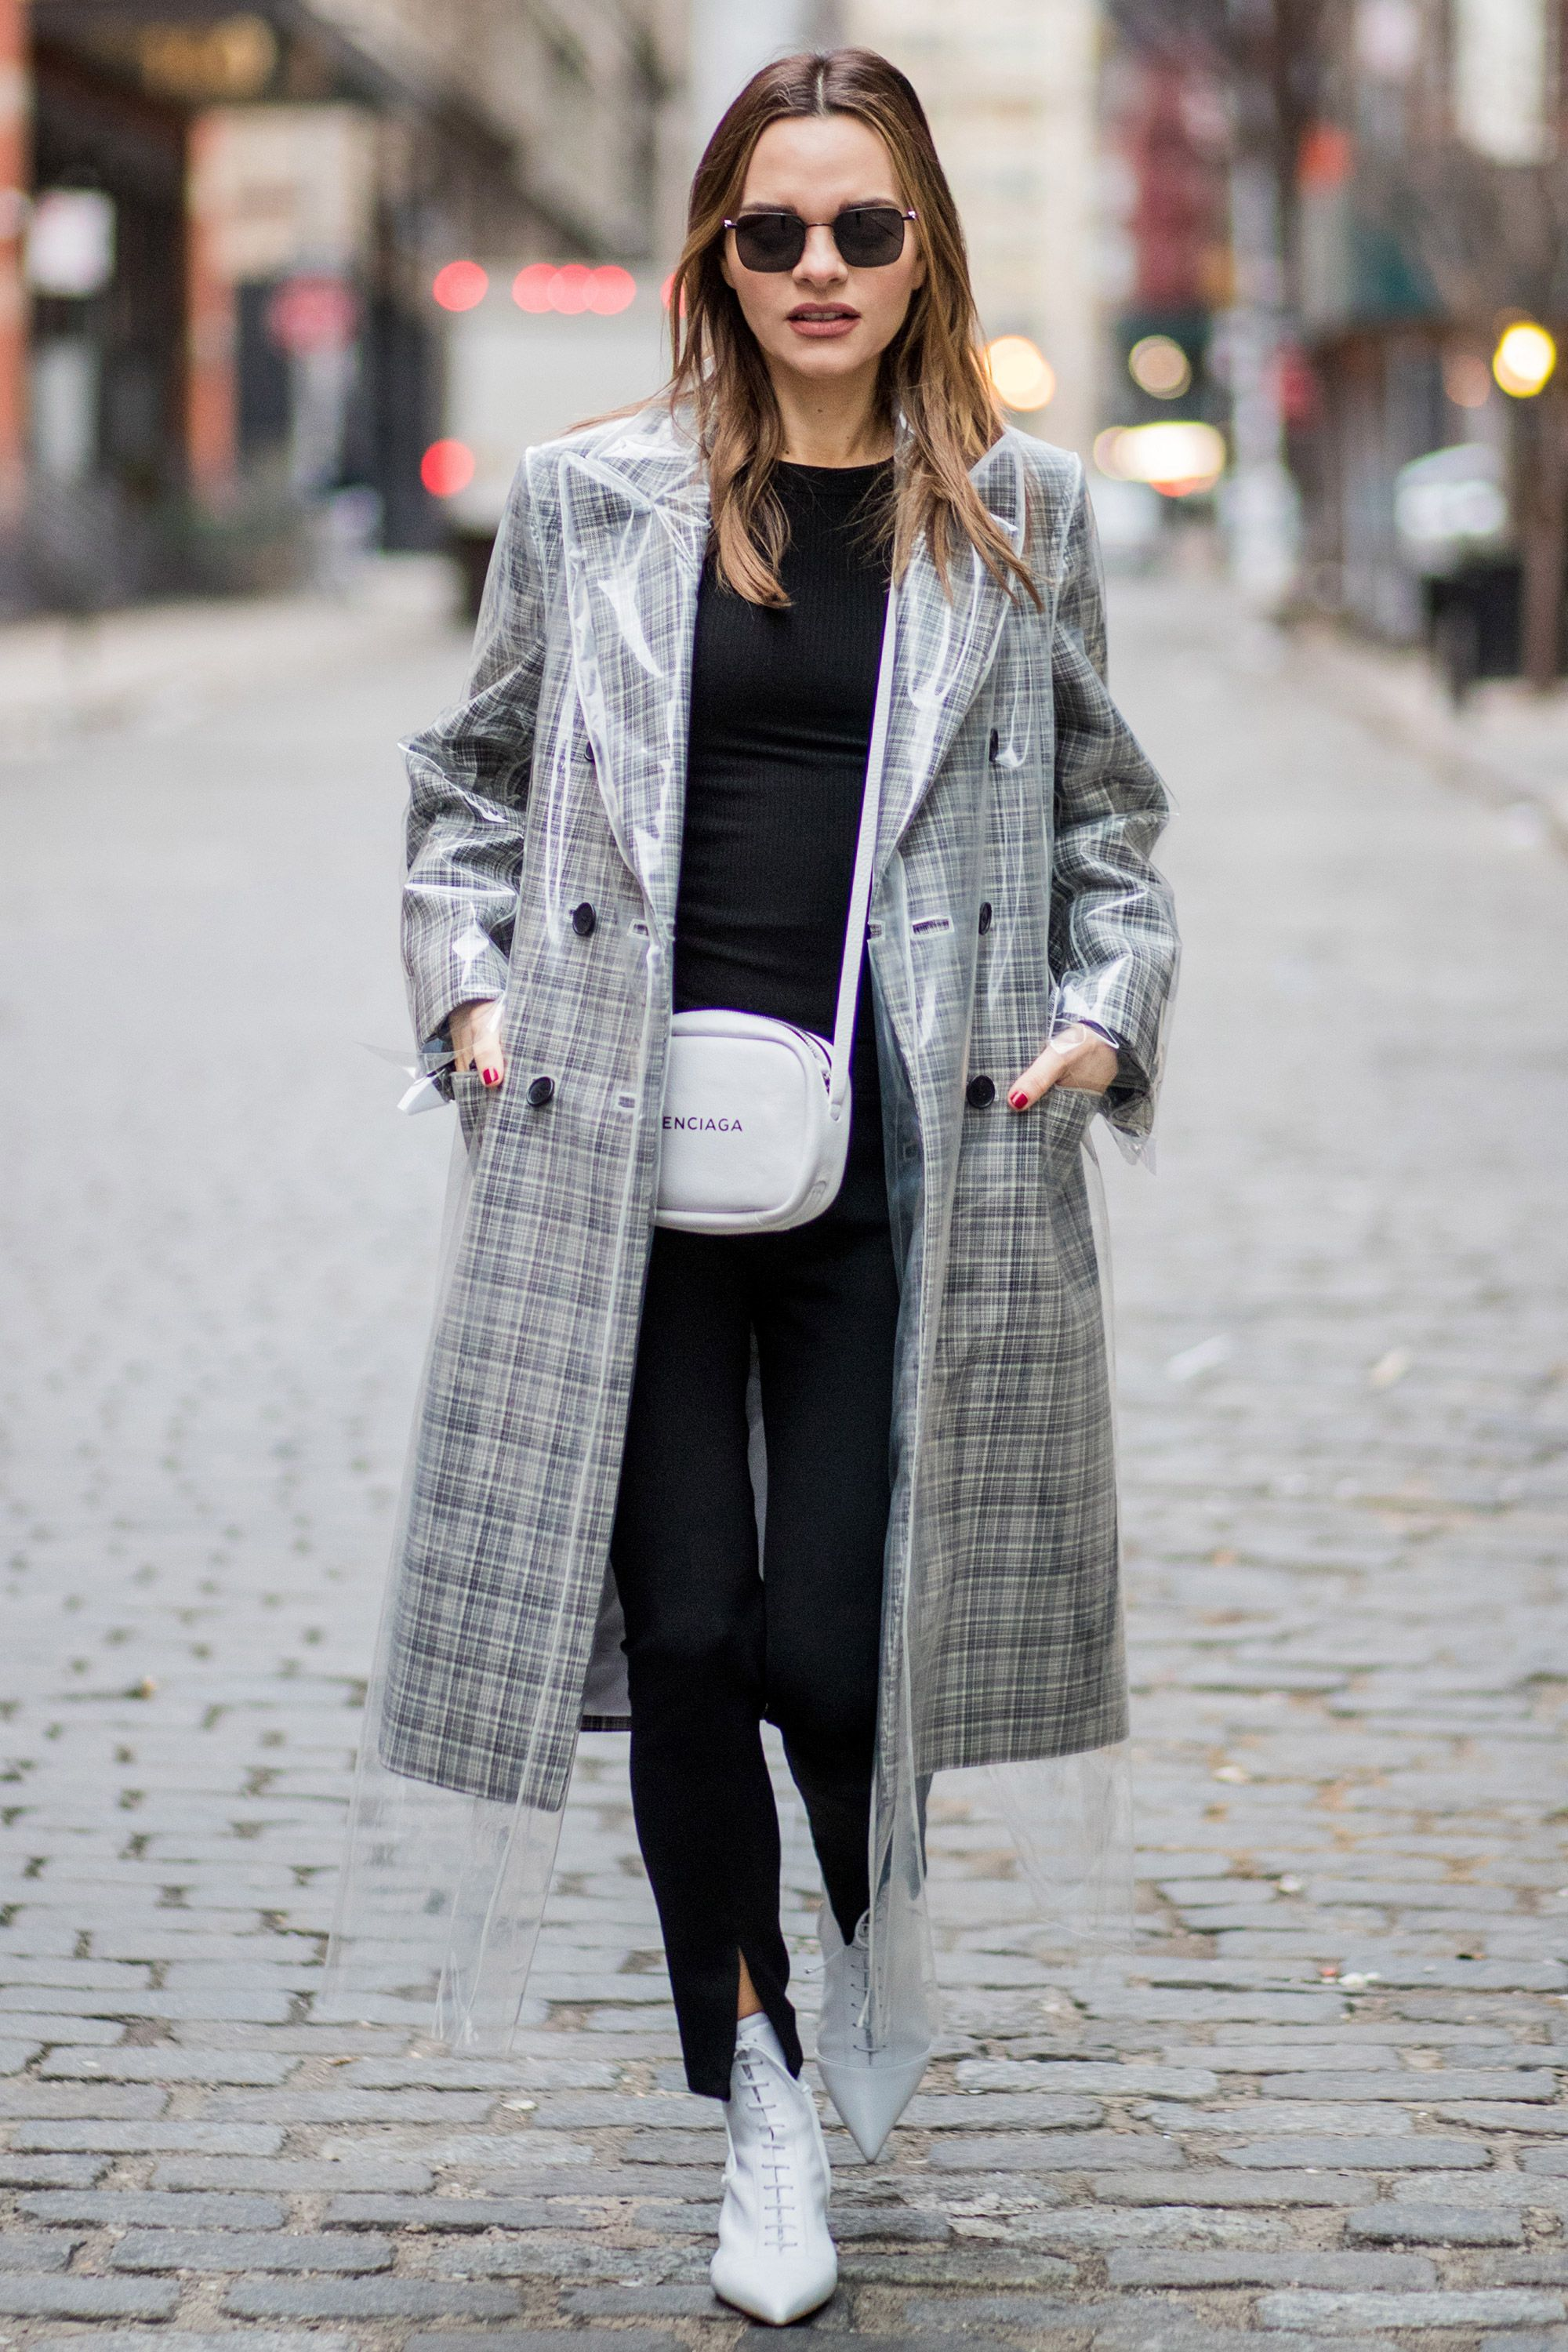 10 best white boots to buy for spring 2019 – How to wear